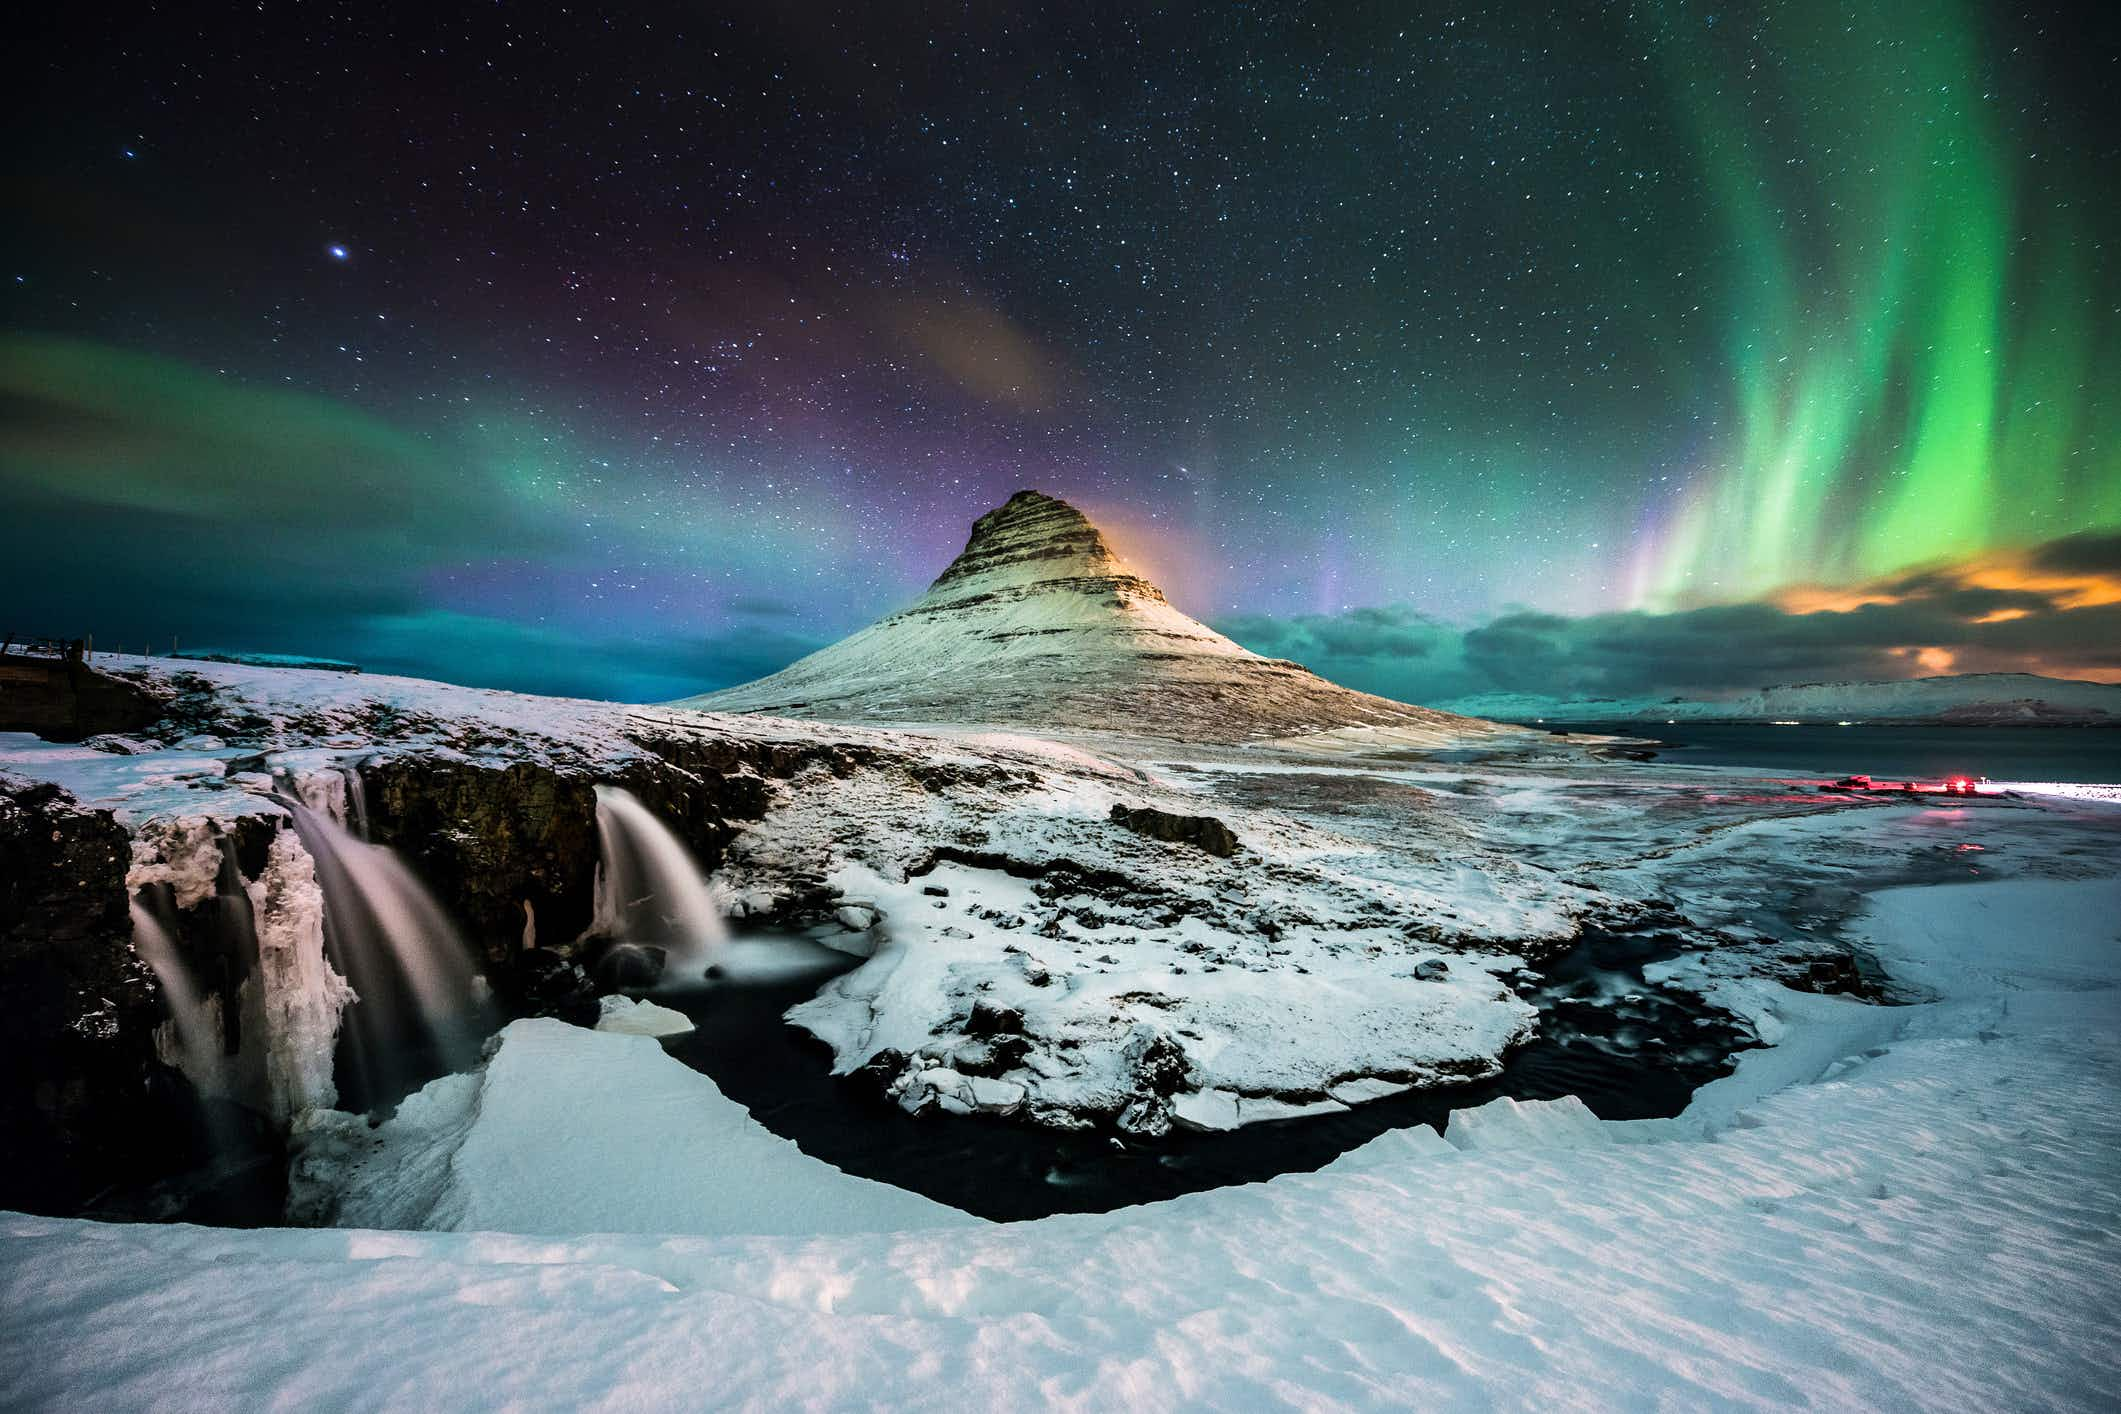 Planning a trip to Iceland to see the Northern Lights? This airline will give you a discount